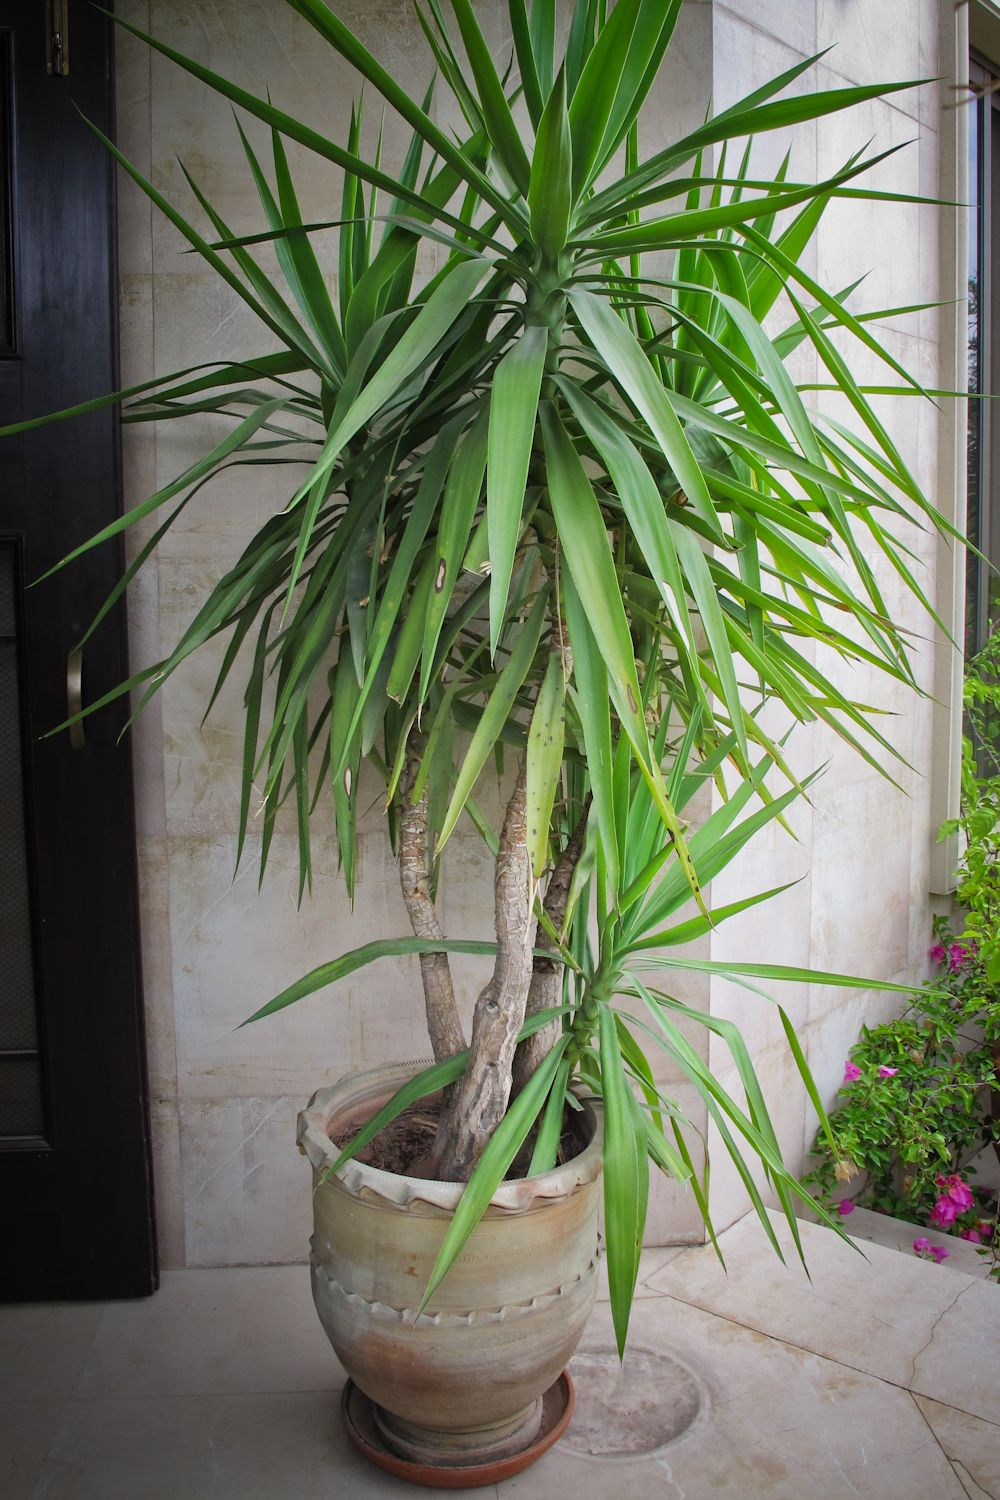 yucca plant in a terracotta pot assortment of plants 40 000 rs pinterest yucca plant. Black Bedroom Furniture Sets. Home Design Ideas